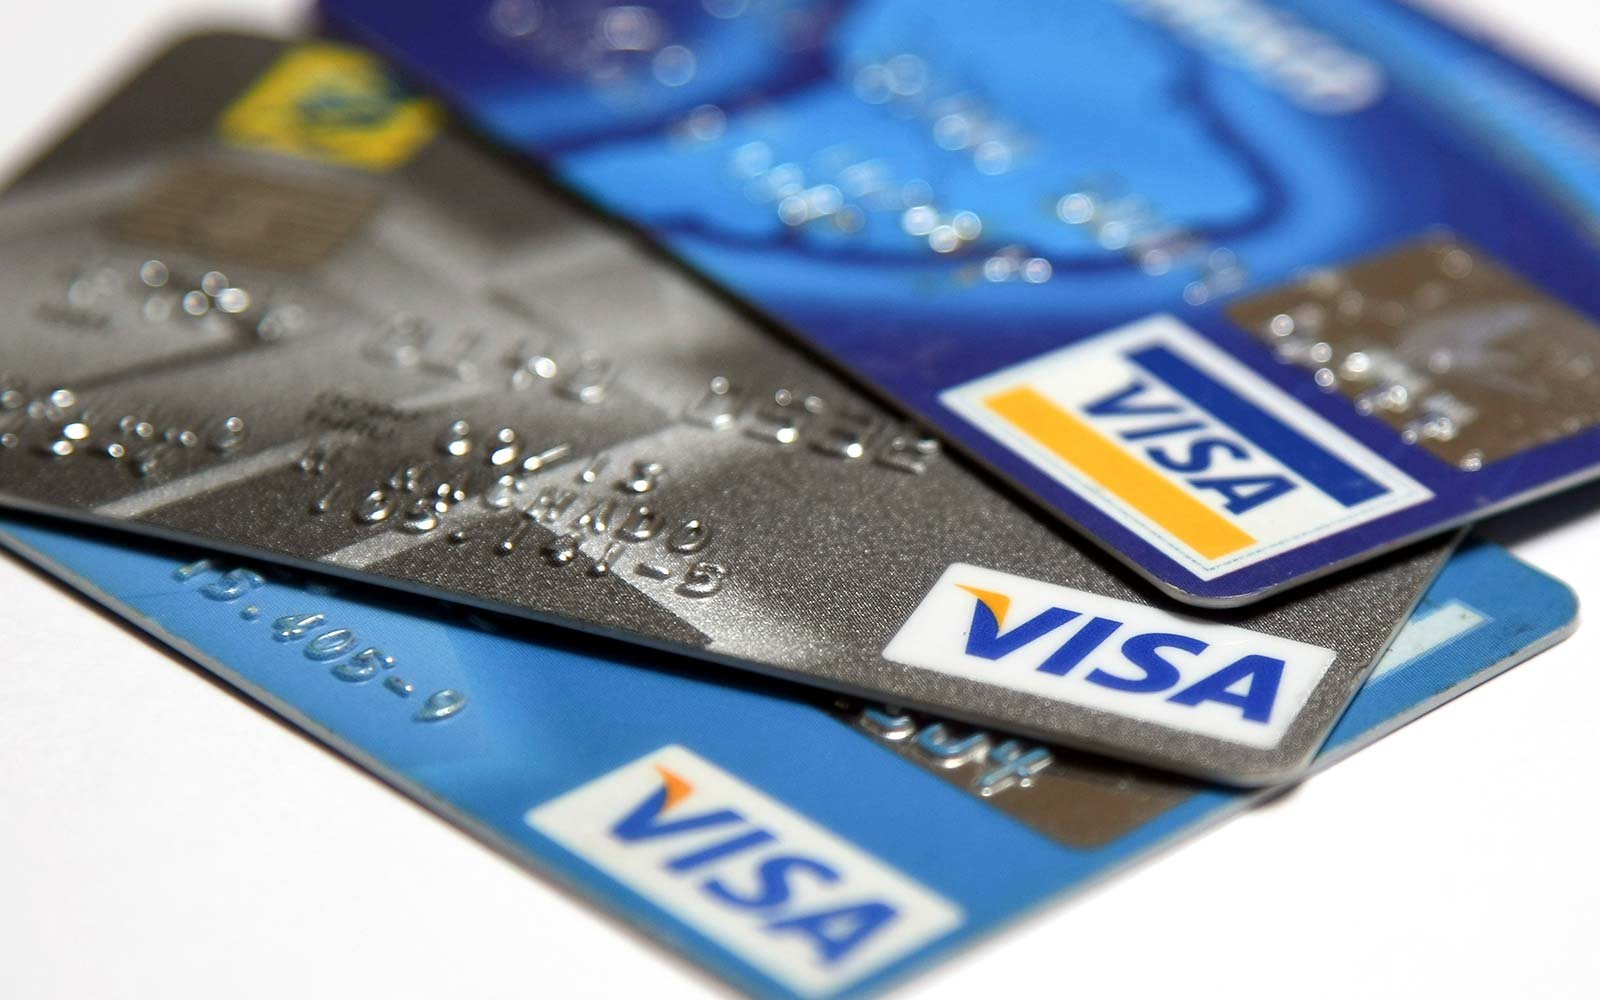 How to Guess Visa Card Details in Just 6 Seconds